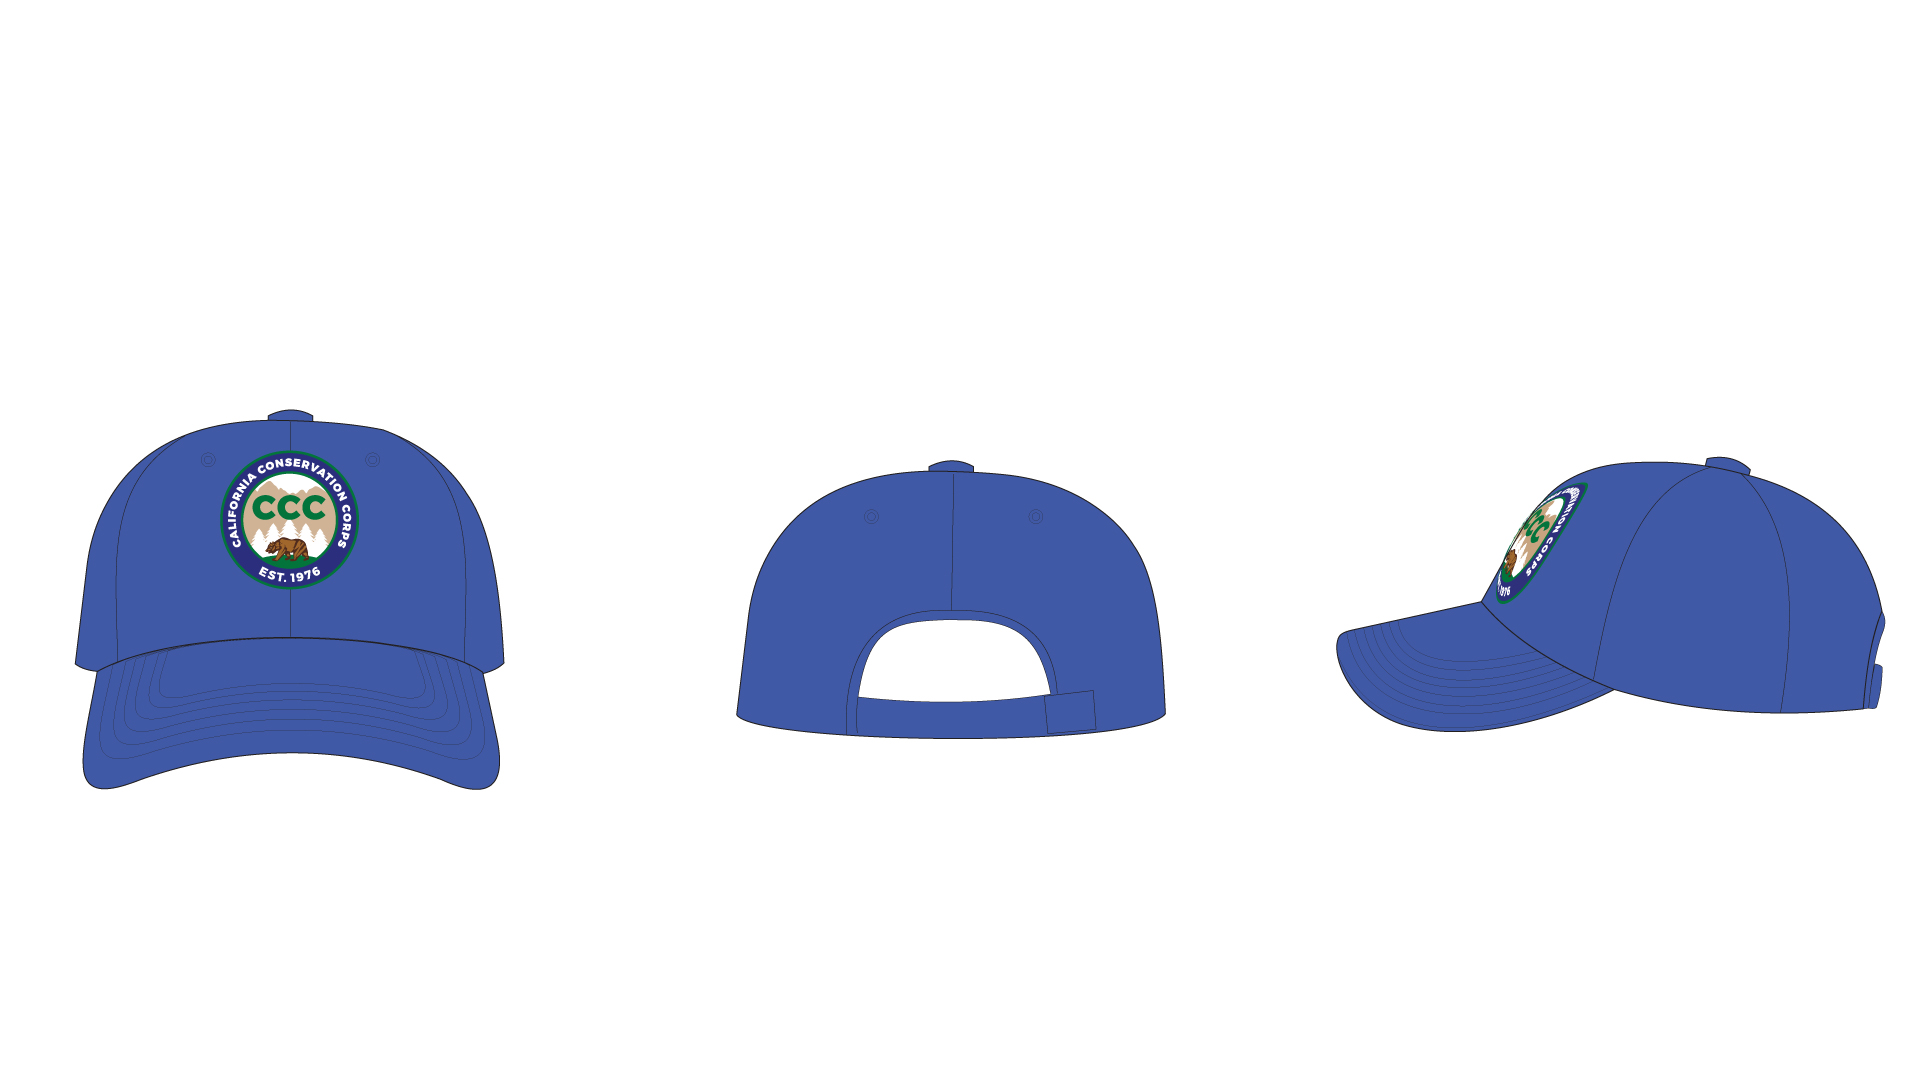 Graphic shows a blue soft hat, baseball cap style, with the CCC logo on the front.